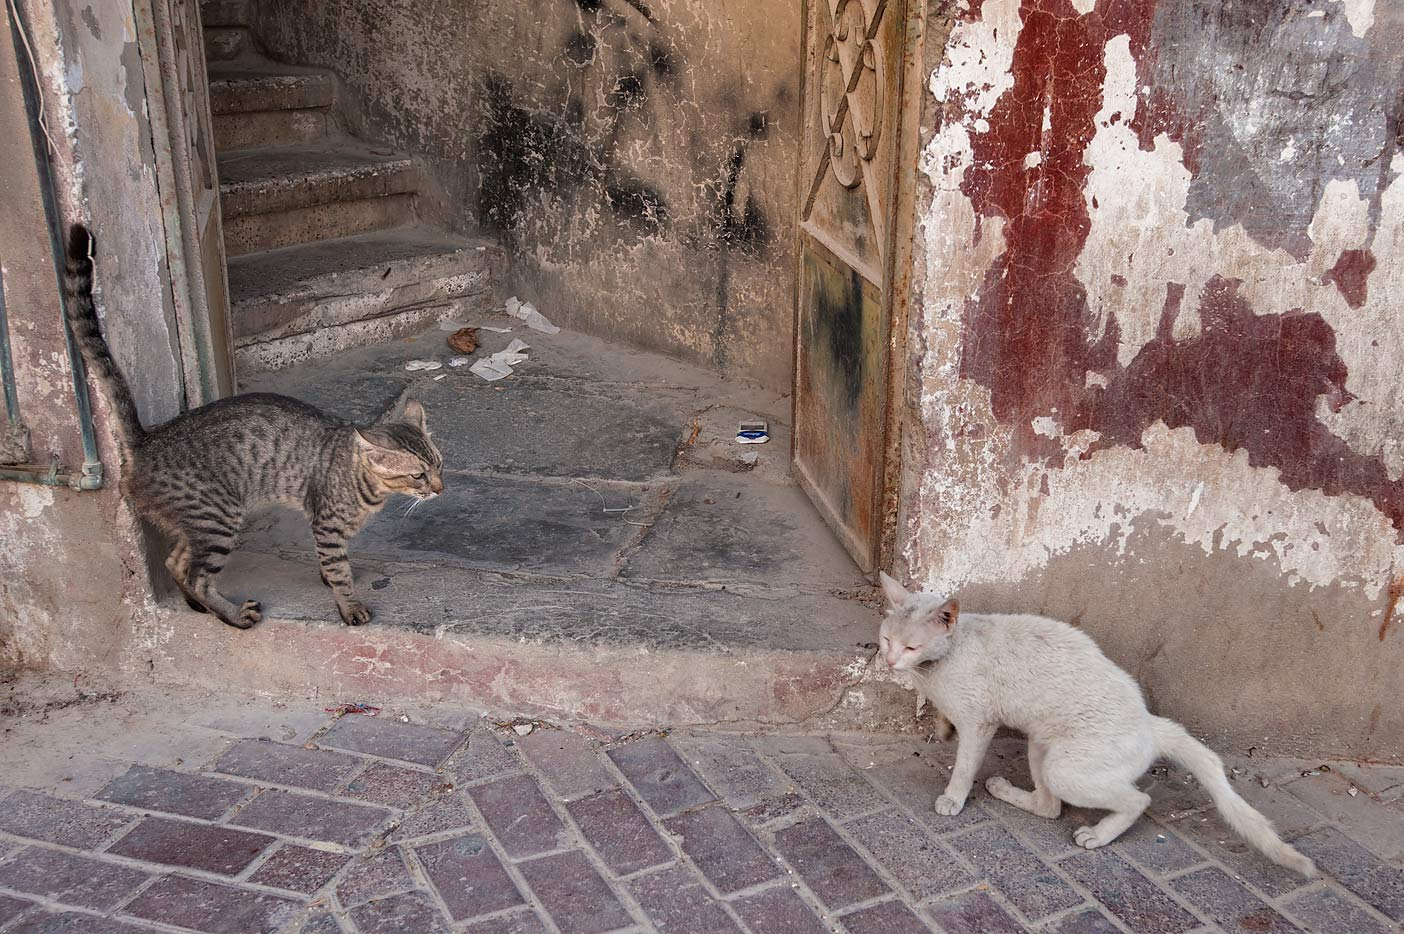 Two cats meeting at Al Asmakh St., Musheirib area. Doha, Qatar